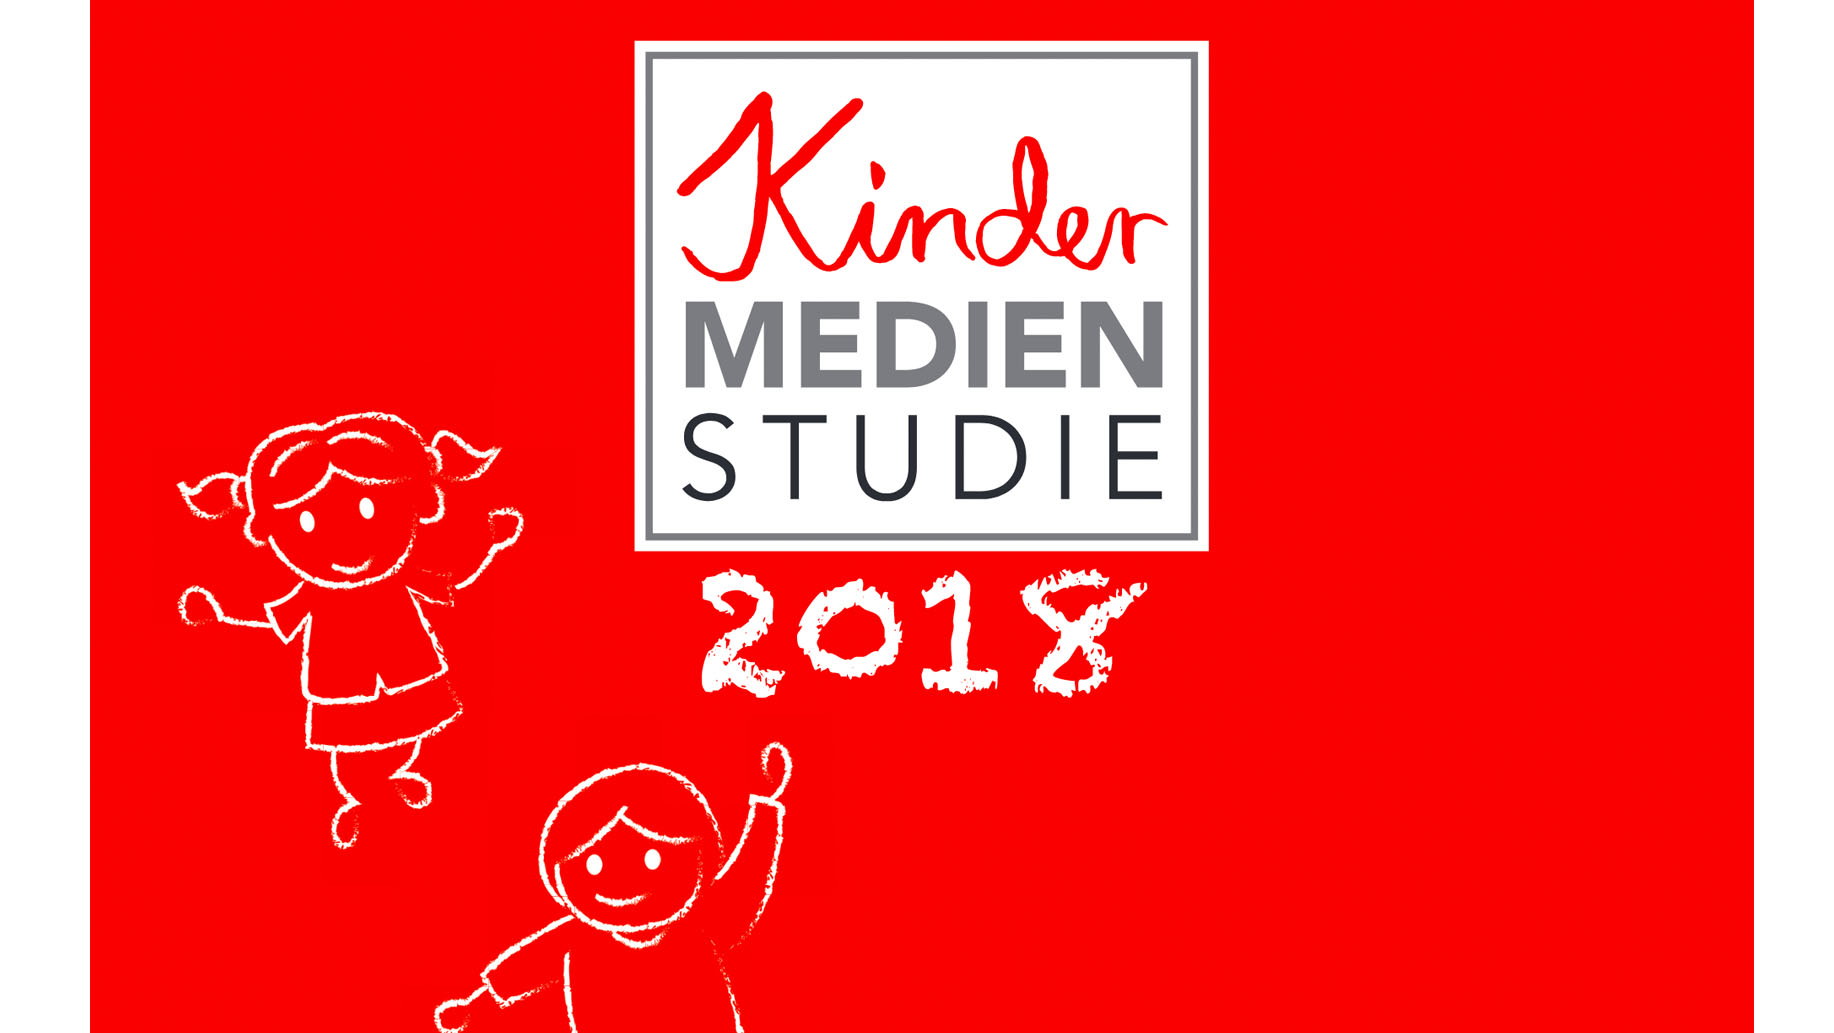 kindermedienstudie-2018-1